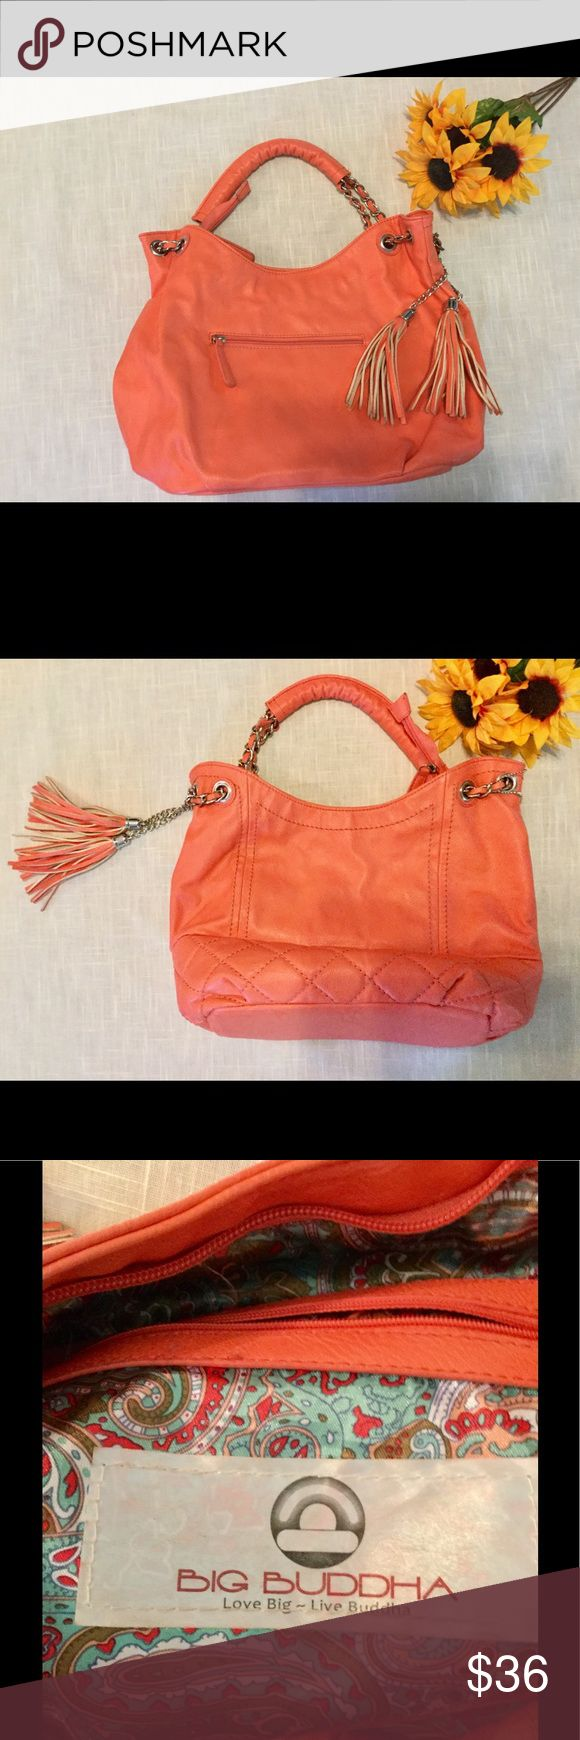 """Unique Big Buddha bag, large hobo SALE NOW! Great condition, gorgeous coral/orange hobo tote to carry all of your necessities. Chains, tassels and logo tag, vegan-friendly leather-like, 12"""" high, 16"""" wide, 5"""" across bottom.  A deal at $36.00 Big Buddha Bags Shoulder Bags"""